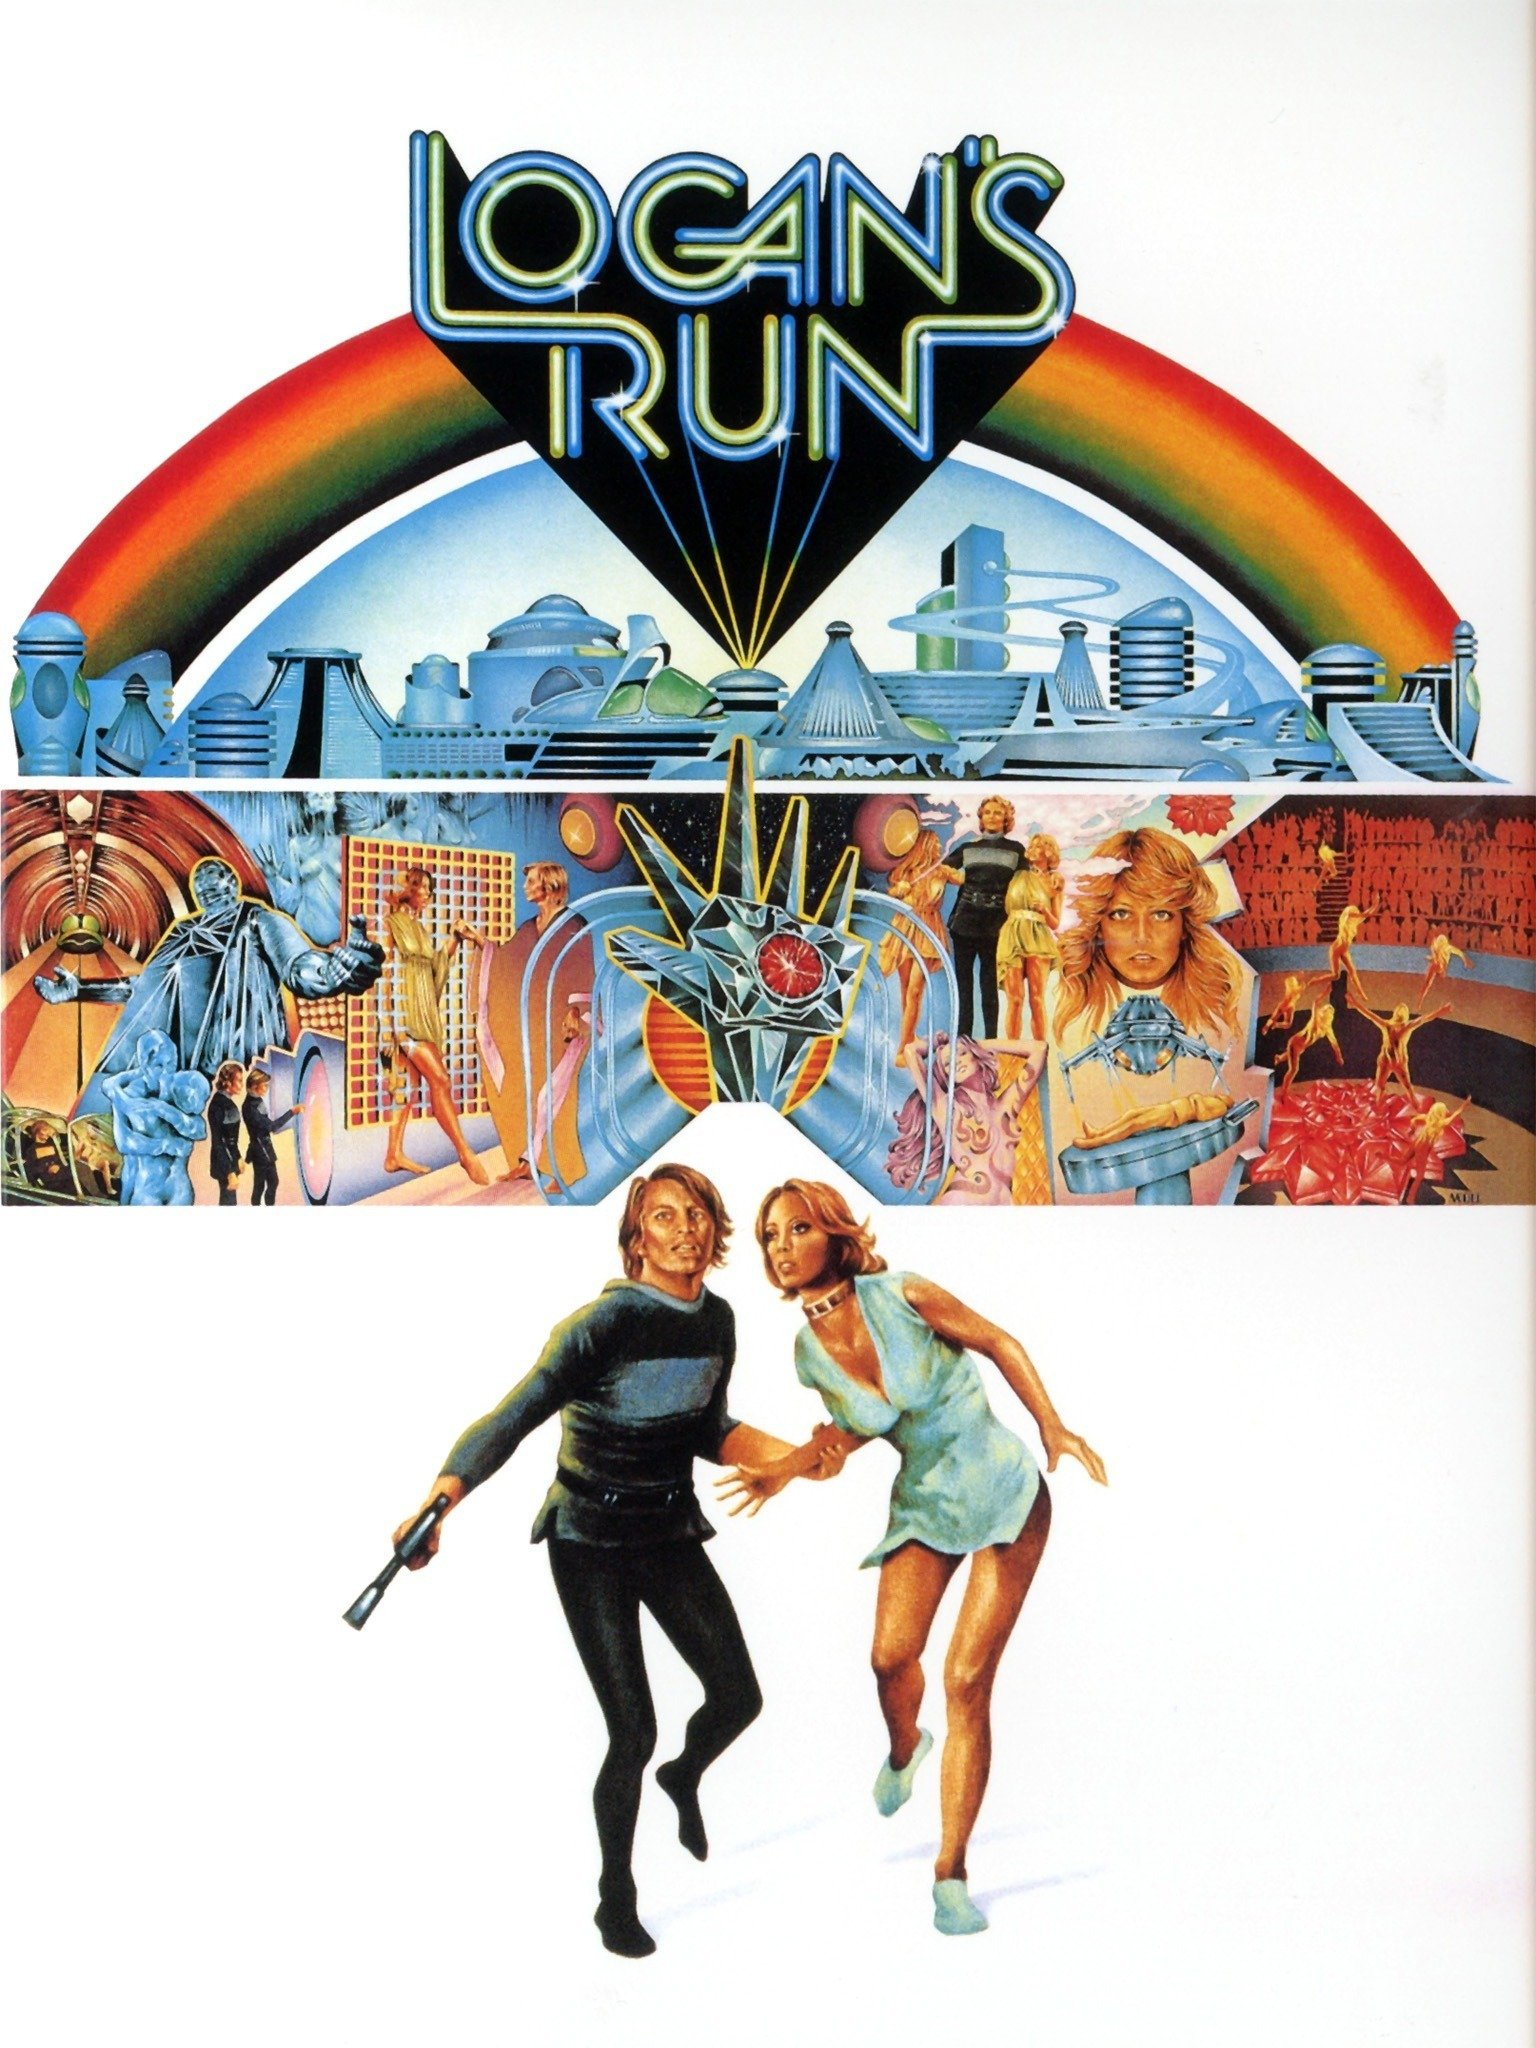 Logan's Run (1976) - Rotten Tomatoes